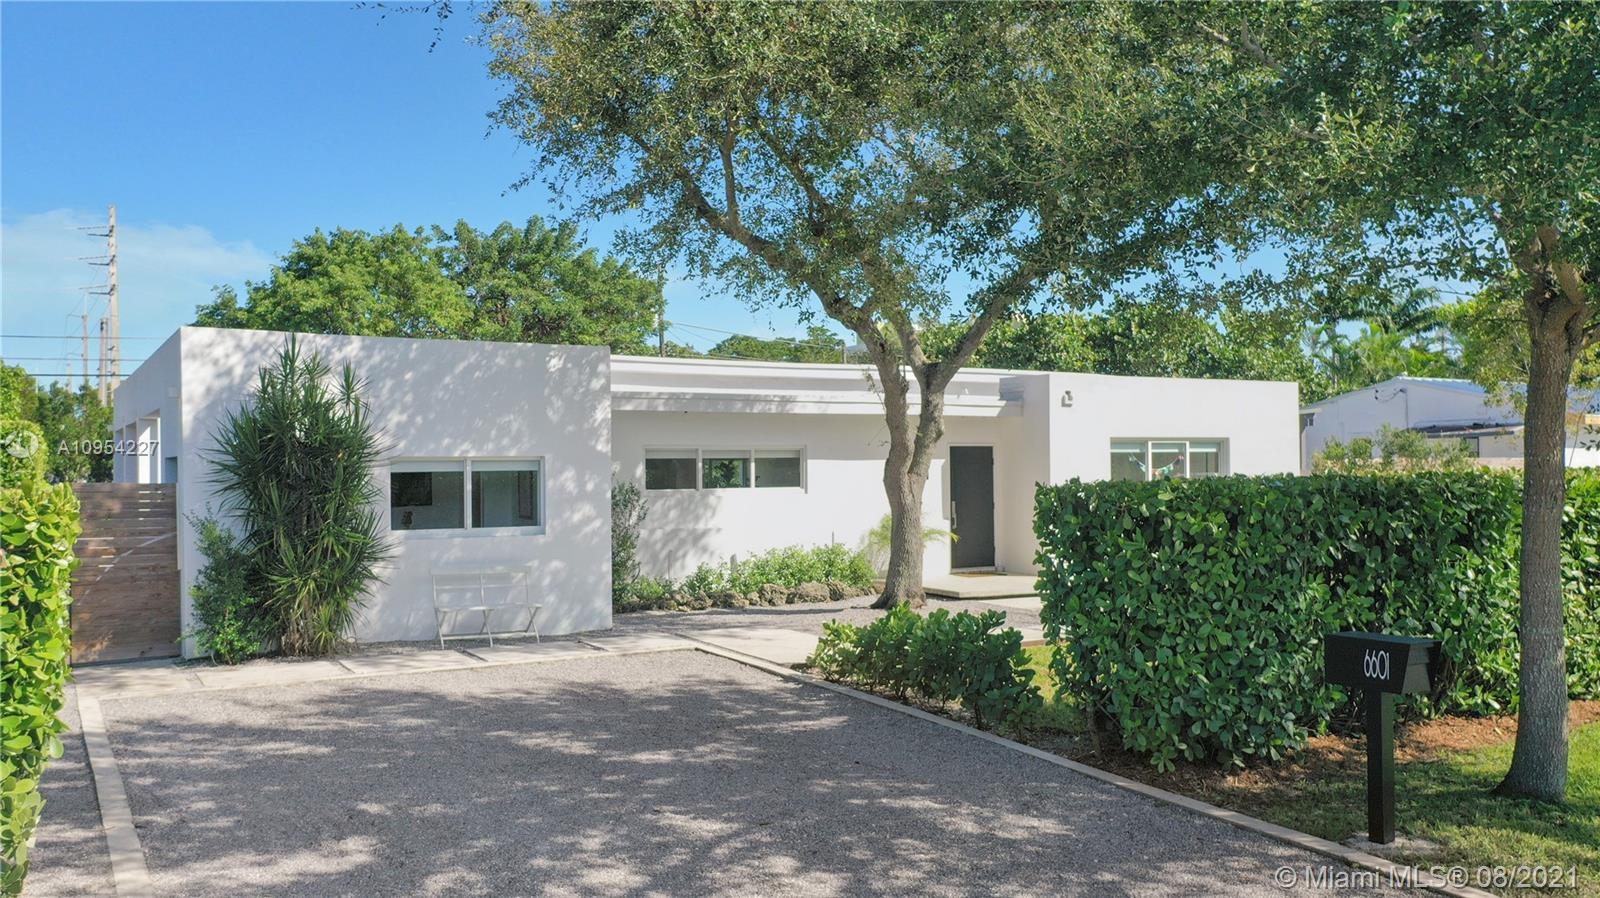 Tastefully renovated gem in the heart of South Miami. This 3-bed, 2-bath pool home has a very bright & functional layout with tile floors, LED lighting, impact windows/doors & modern kitchen with quartz countertops, cooking island with polished concrete top & a built-in refrigerator. Fire up the outdoor grill & entertain in the covered patio while overlooking the splendid salt-water pool. Master bedroom has an extra-large closet & provides access to a cozy outdoor lounge area, to unwind while gazing at the mature native plants edging around the near 11,000 sq ft fenced-in property. Perfect for families looking for a private, move-in ready home that offers vast space while allowing for future expansion, as its foundation is reinforced for a 2nd story. Schedule a visit or request the 3D tour